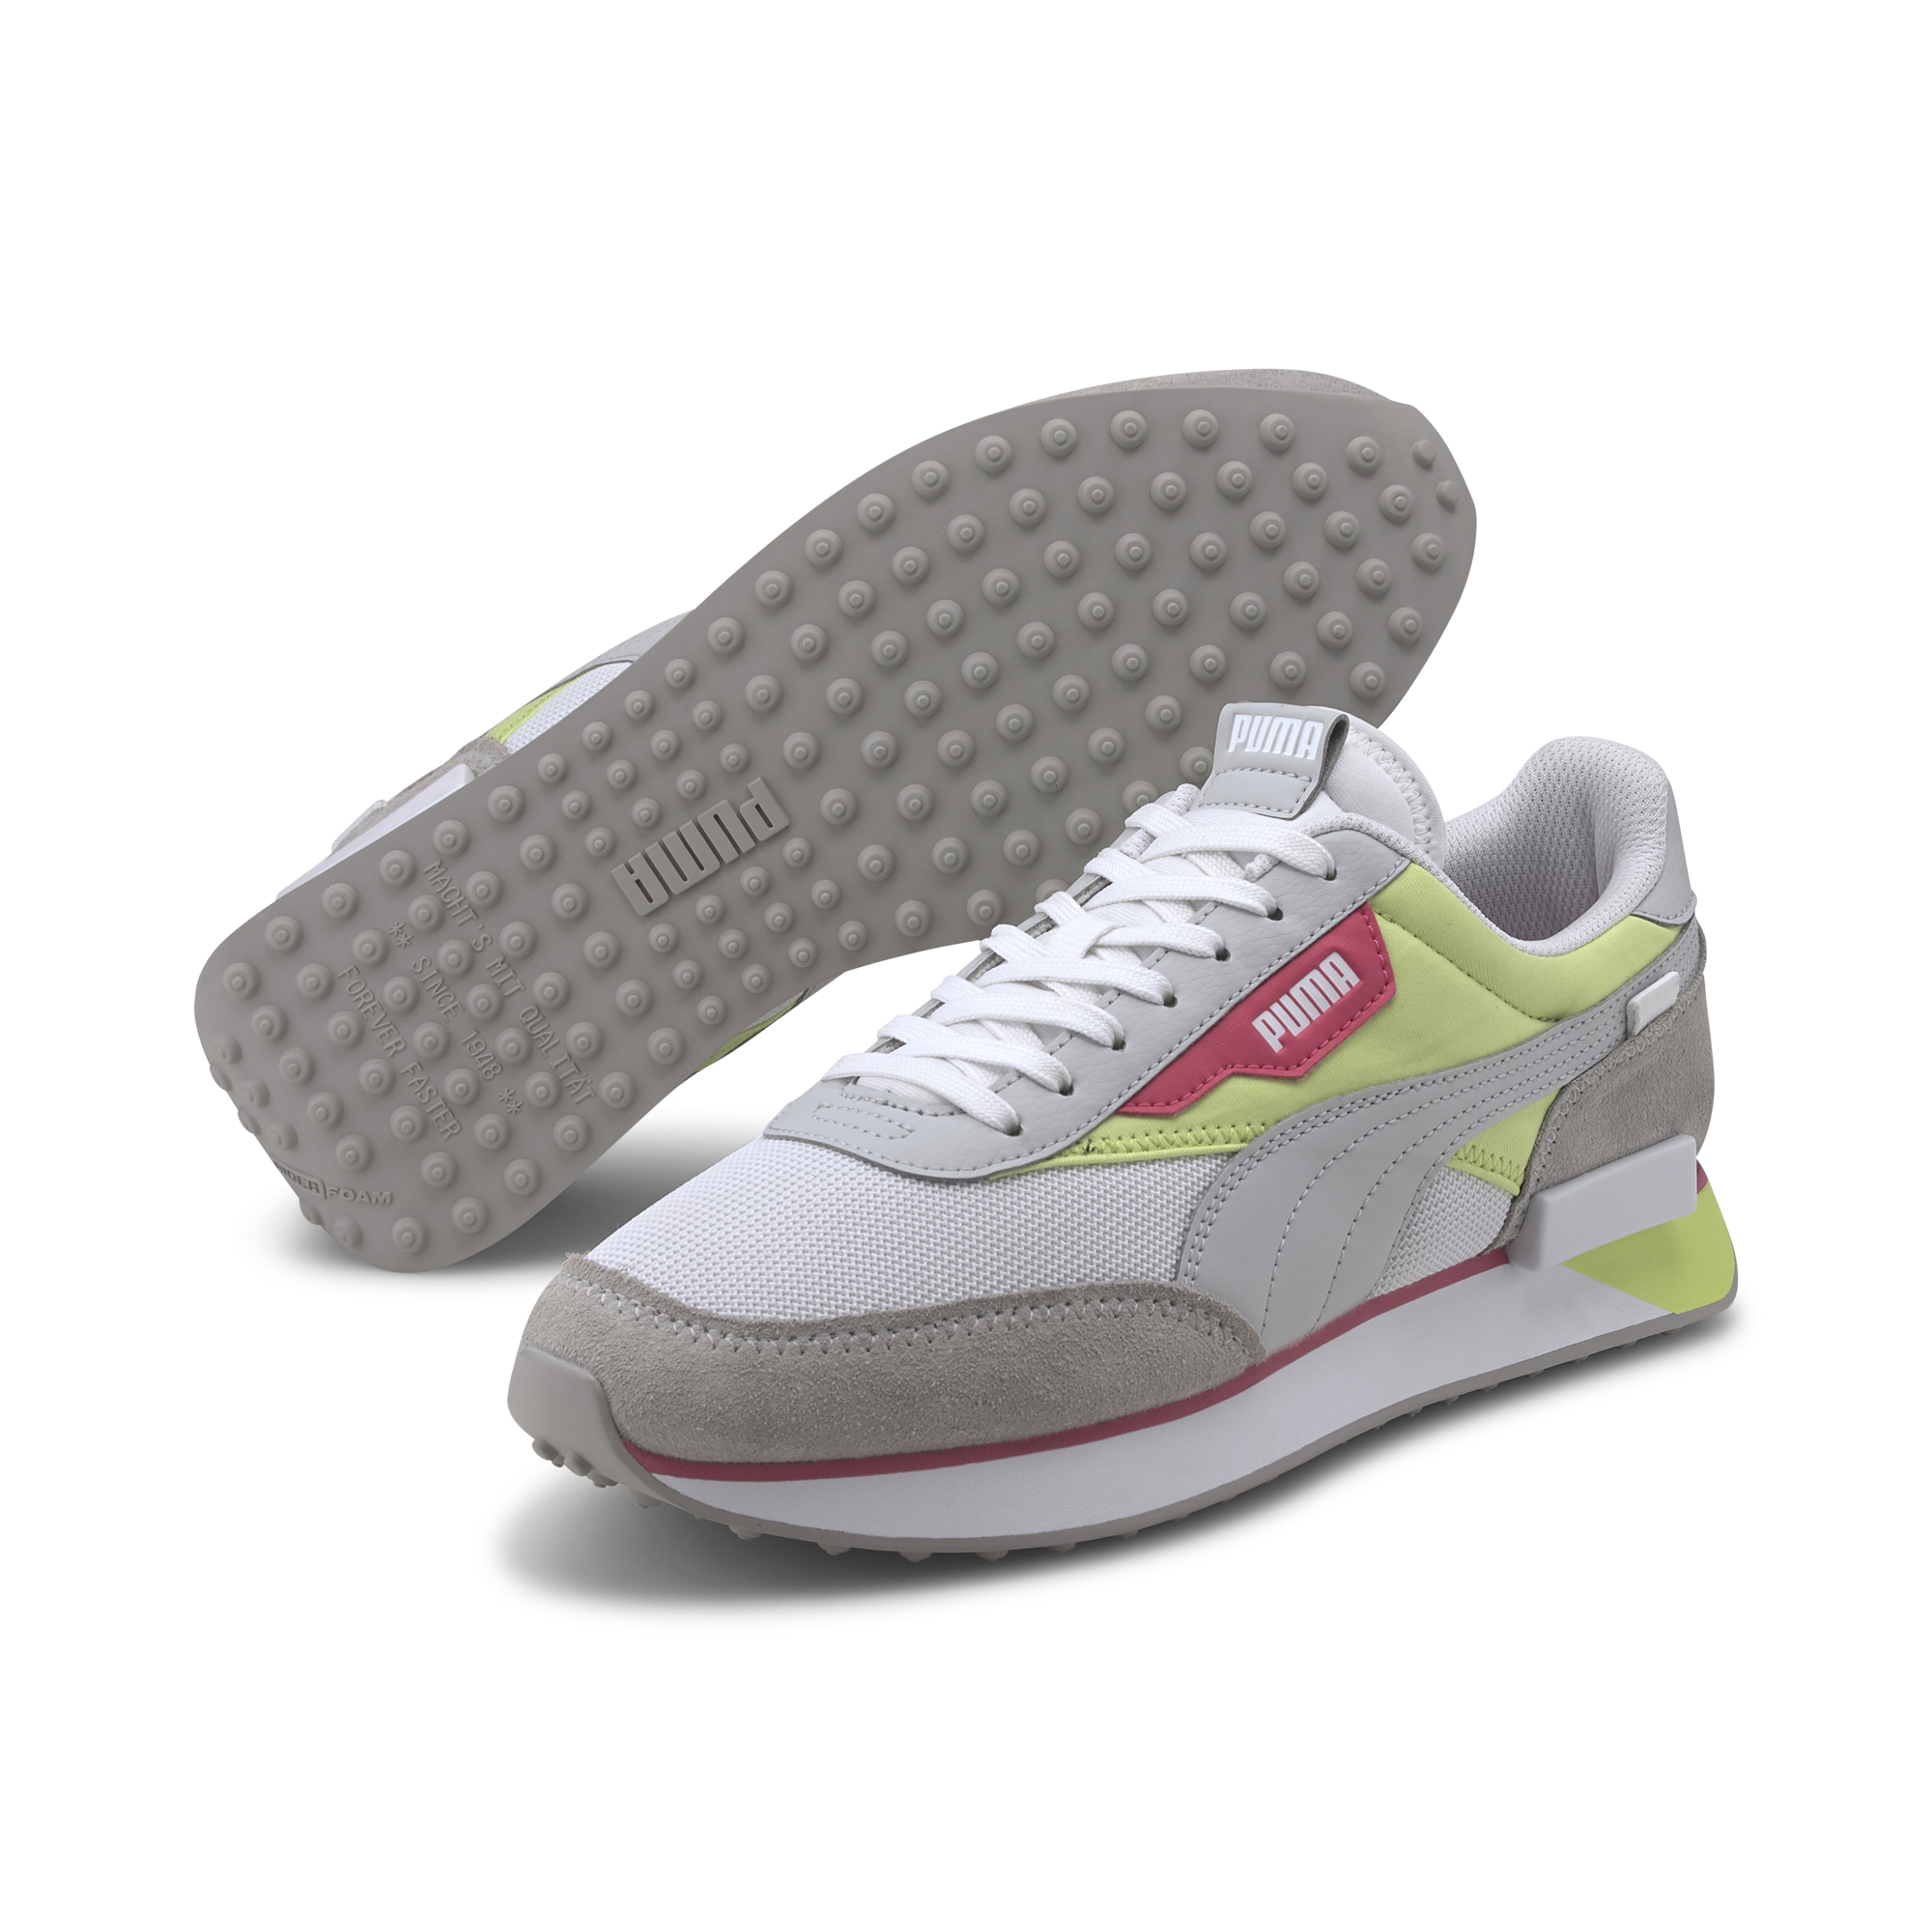 Puma Future Rider Neon Play Grey Violet-Sharp Puma Green